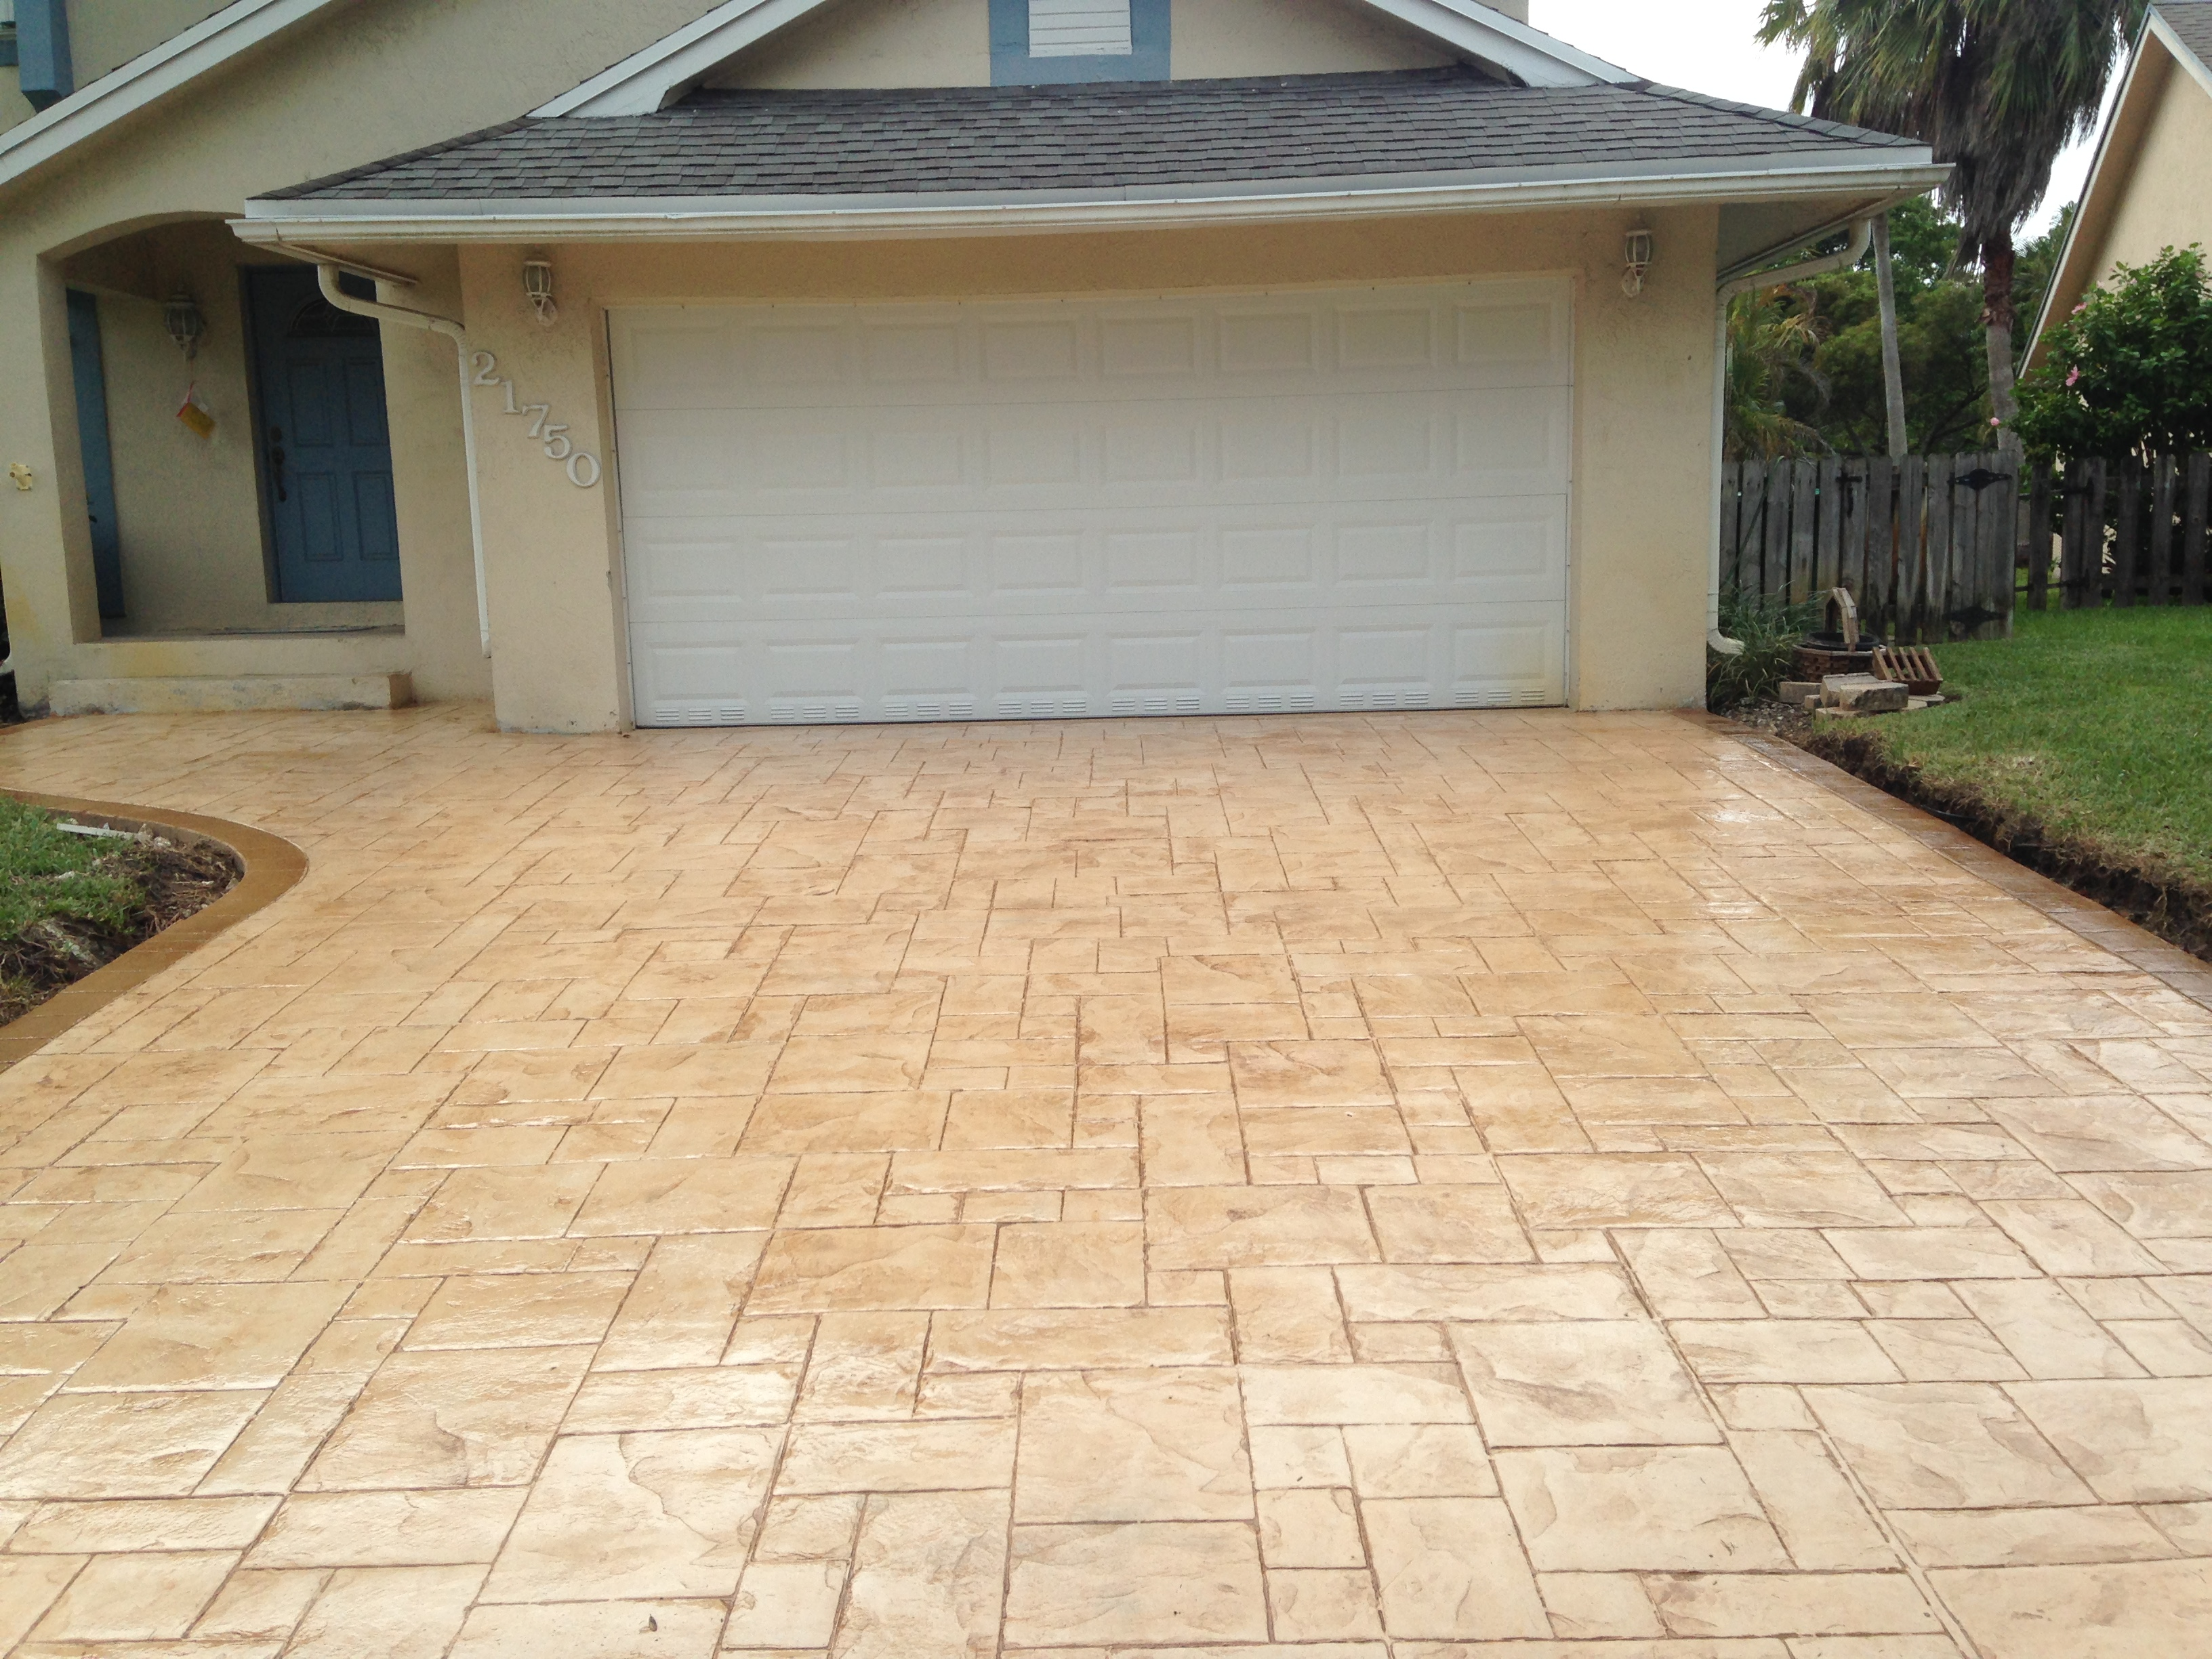 Grand Ashlar Slate (Stamp Concrete), Color: Adobe Buff and Oak